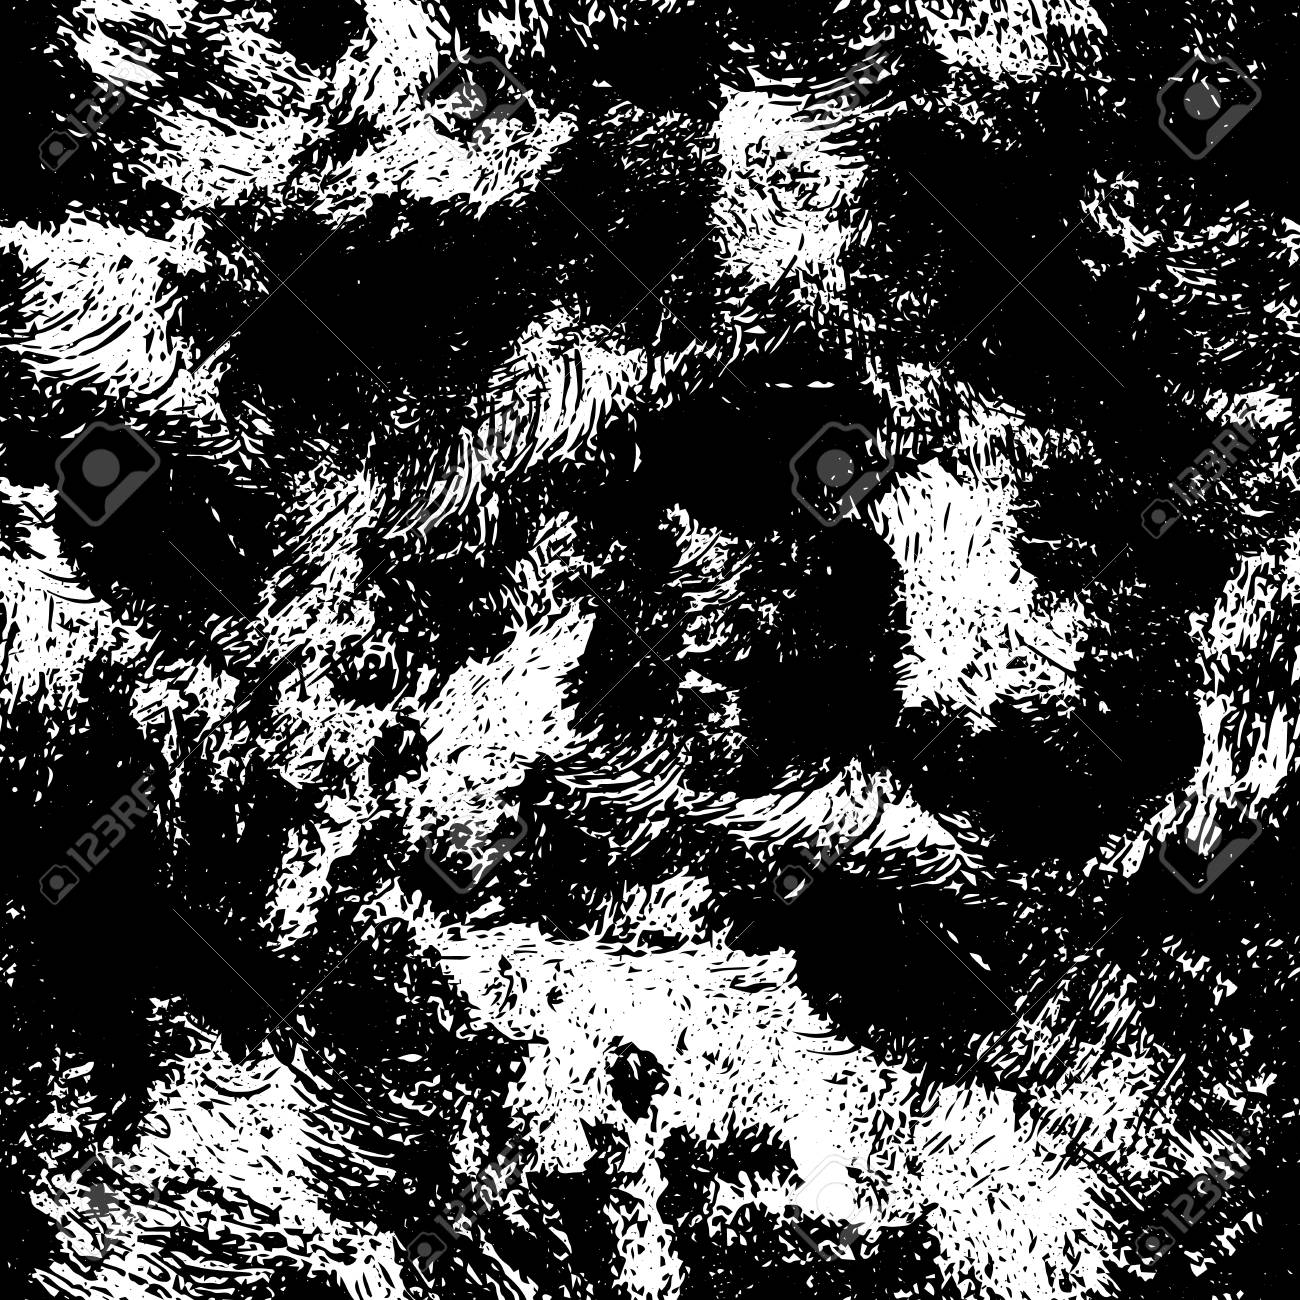 Black and white retro dirty grunge texture seamless pattern